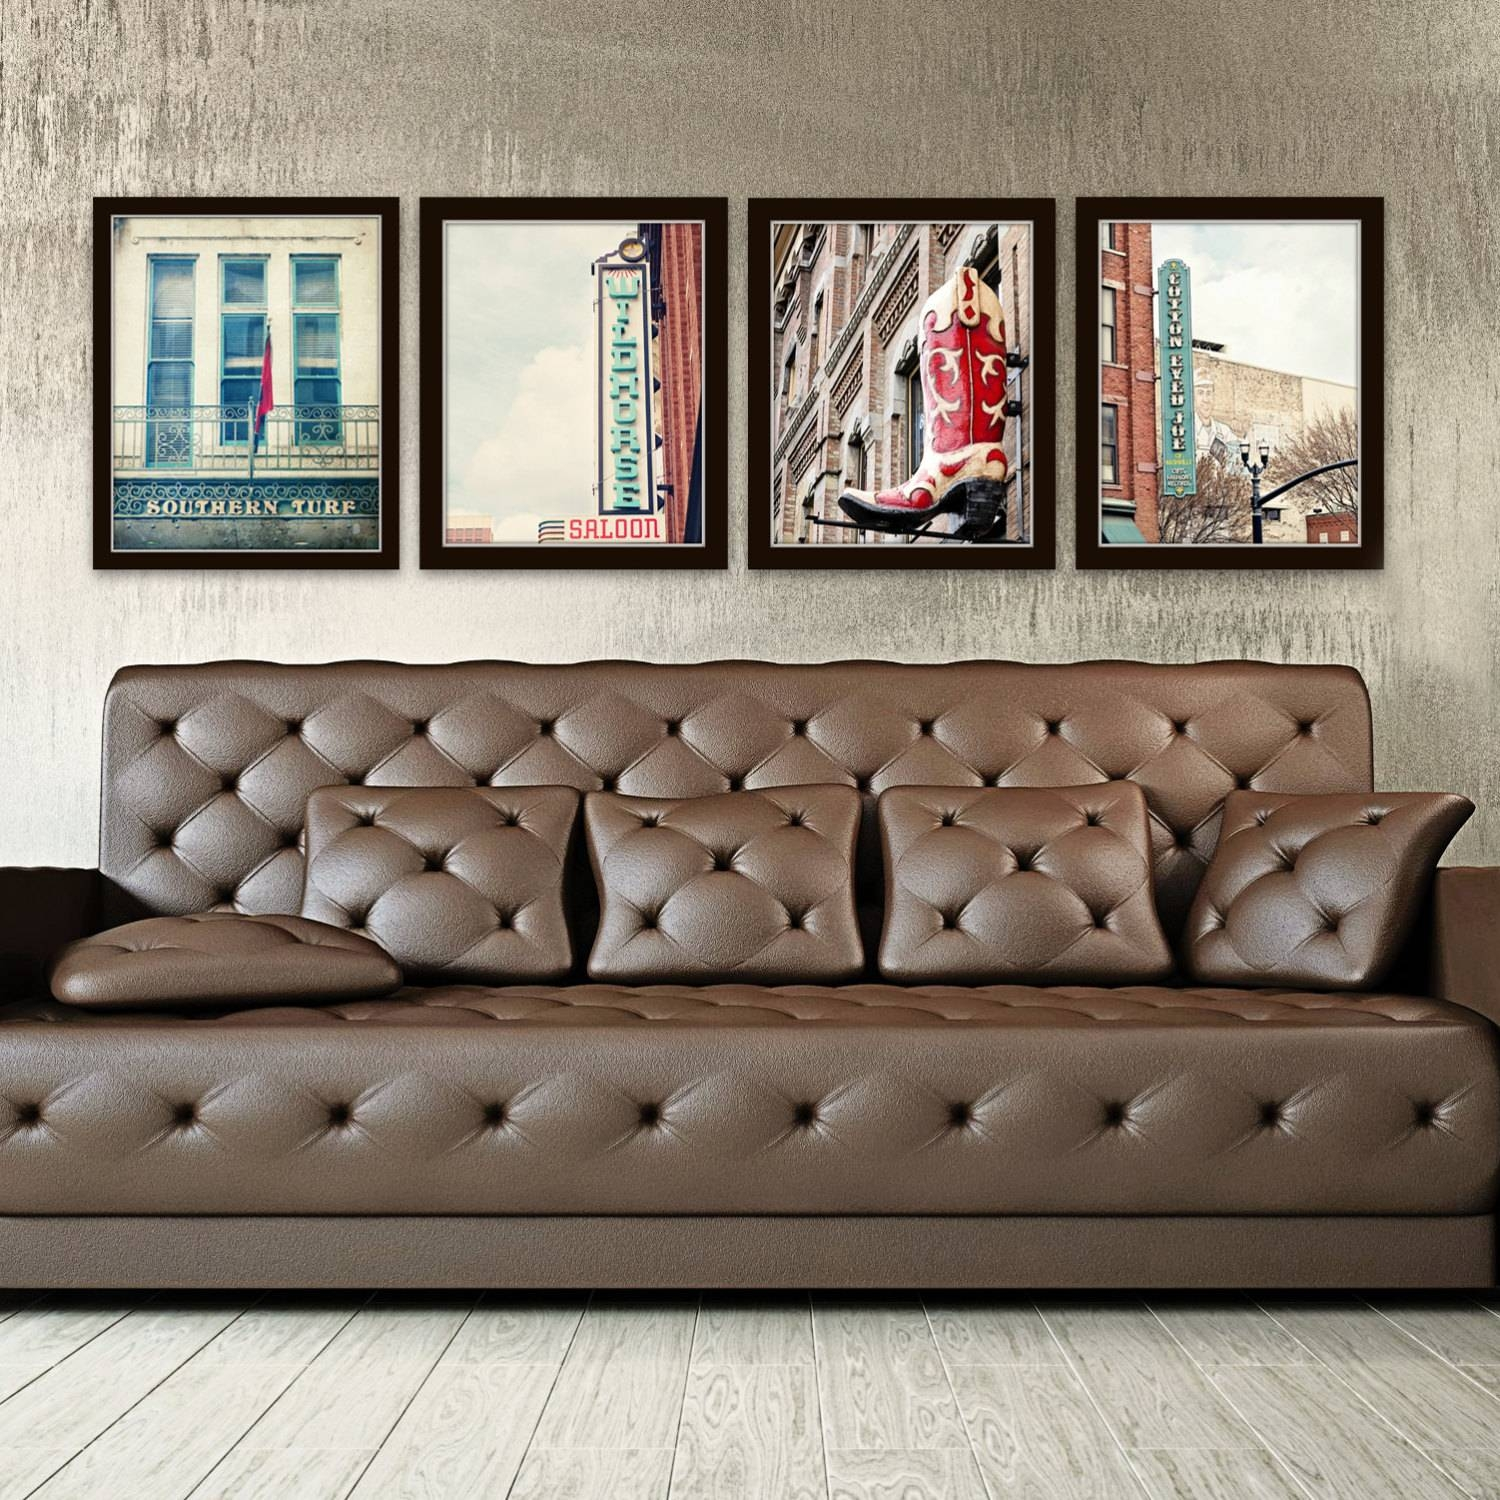 Nashville Wall Art Industrial Decor City Photography Set Of 4 With Regard To 2018 Industrial Wall Art (View 7 of 15)